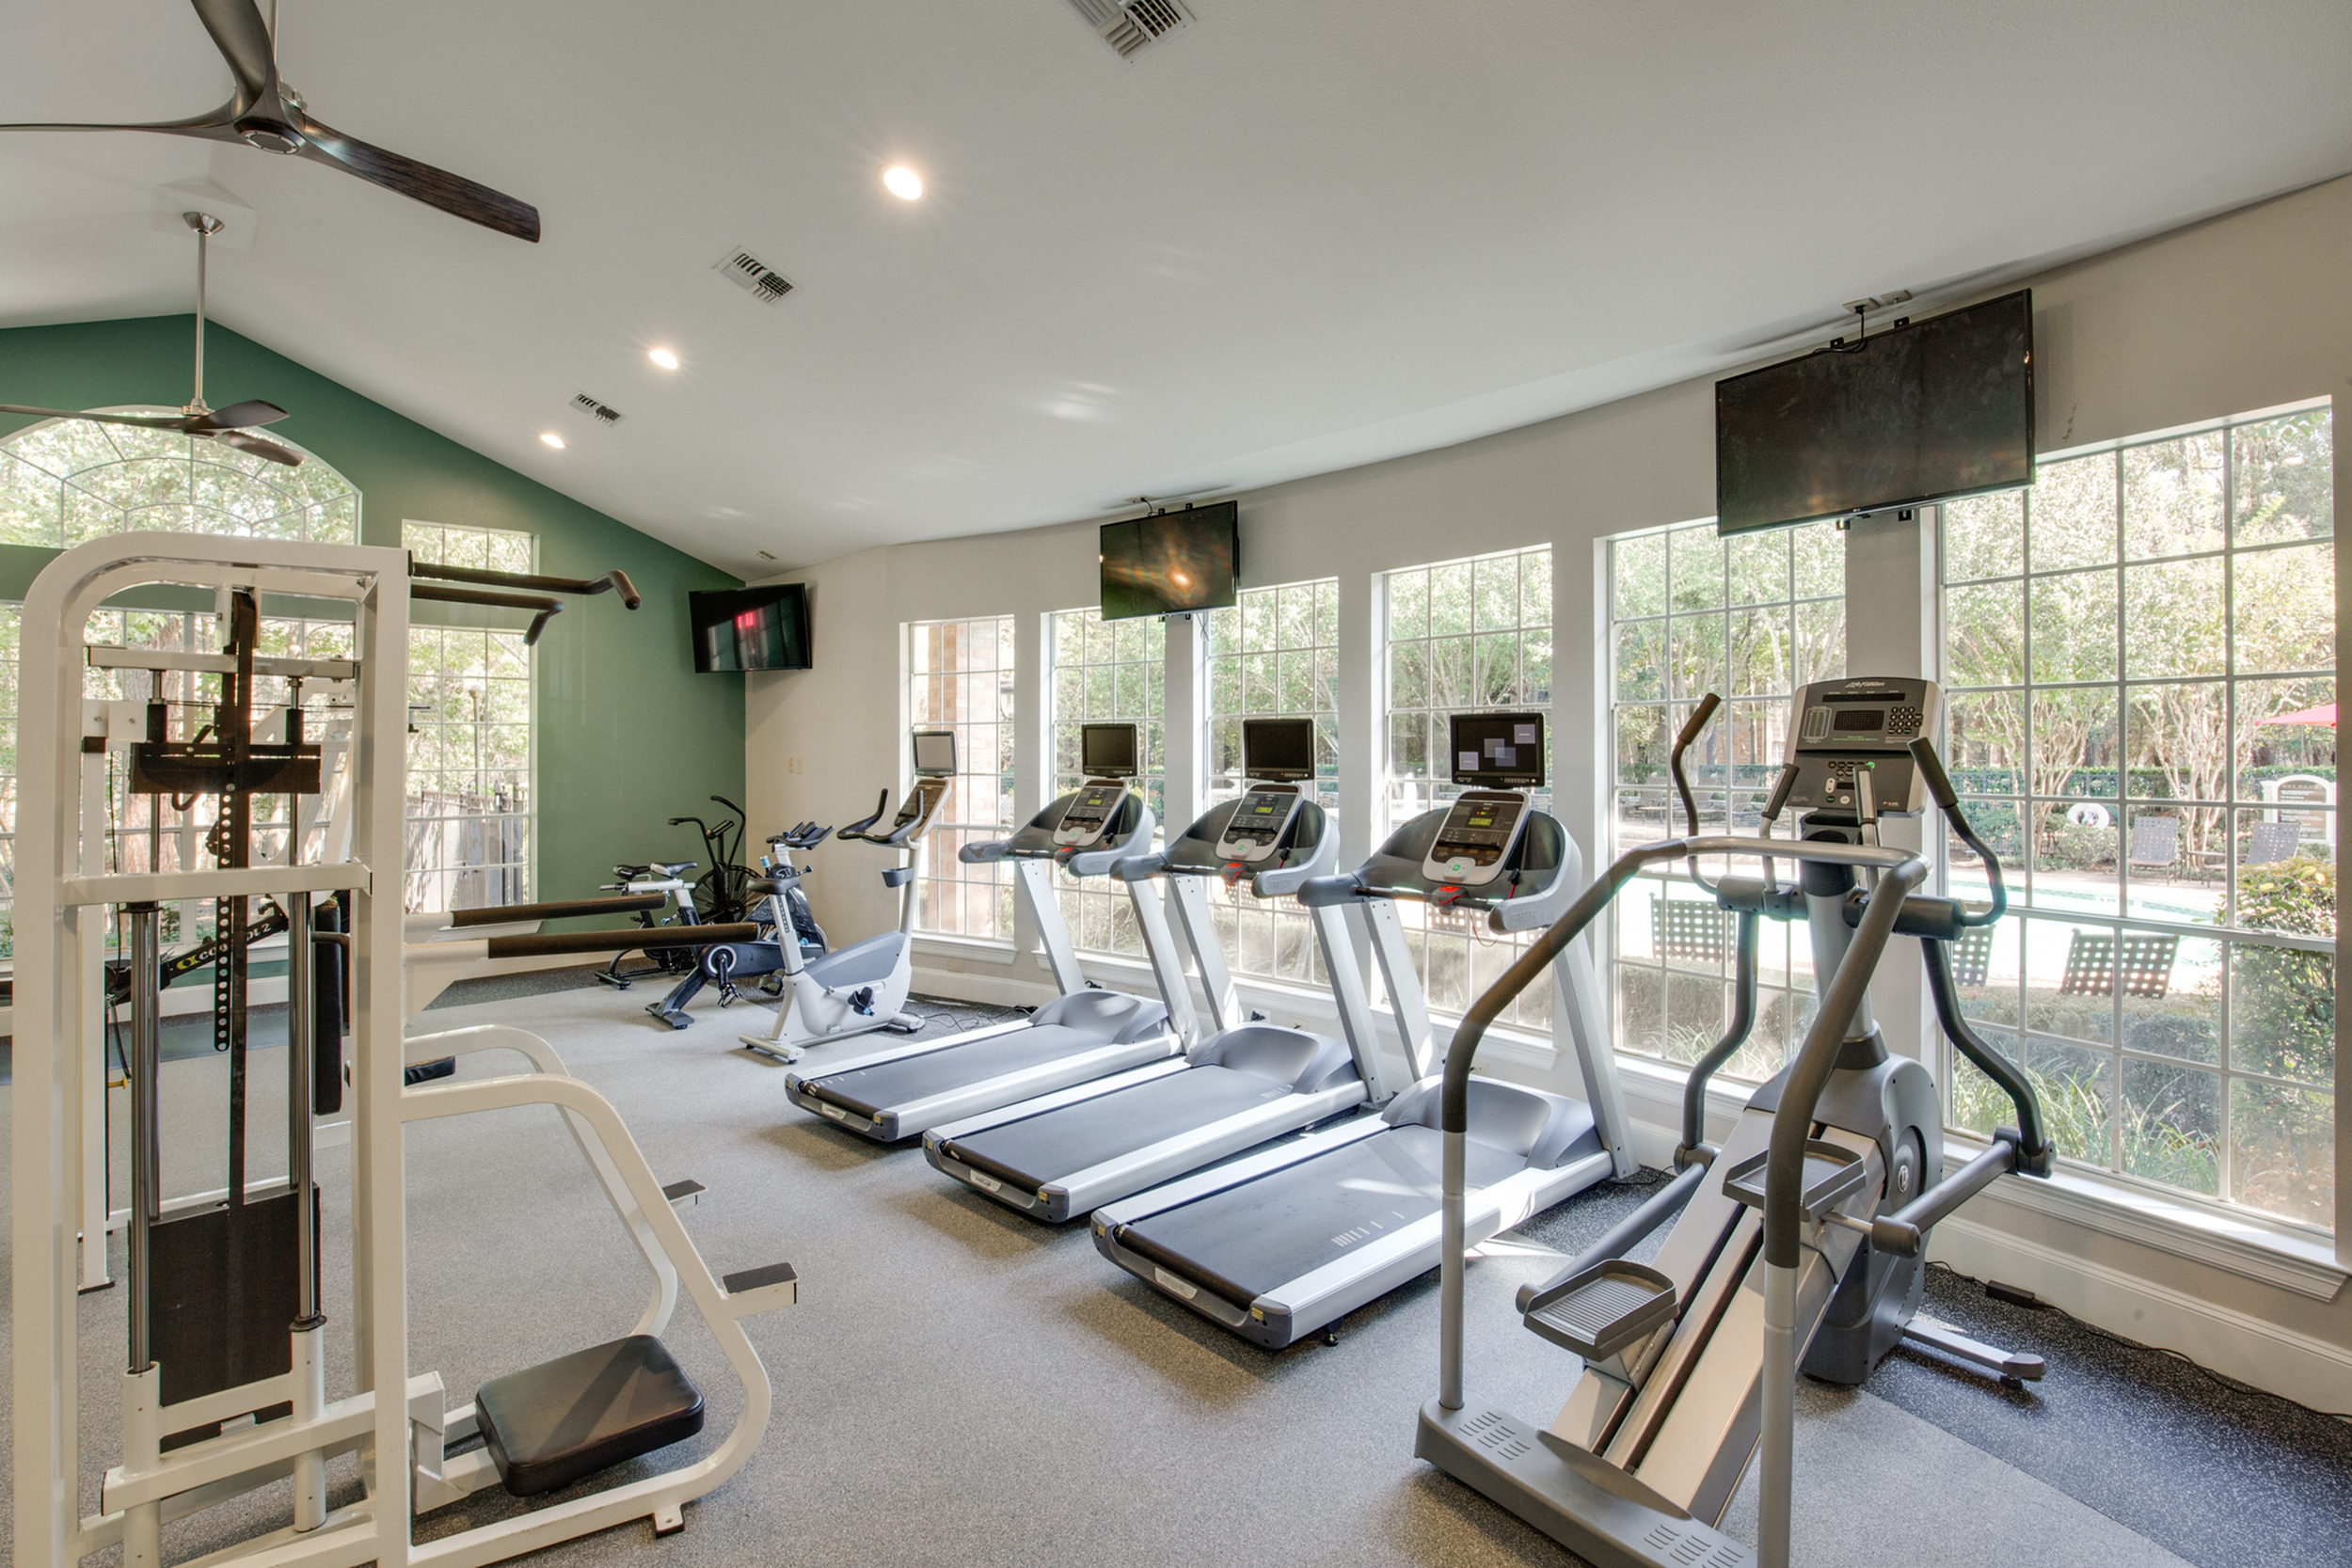 View of Fitness Center with Ceiling Fan, Cardio Machines, and Mounted Flat Screen TVs at Raveneaux Apartments